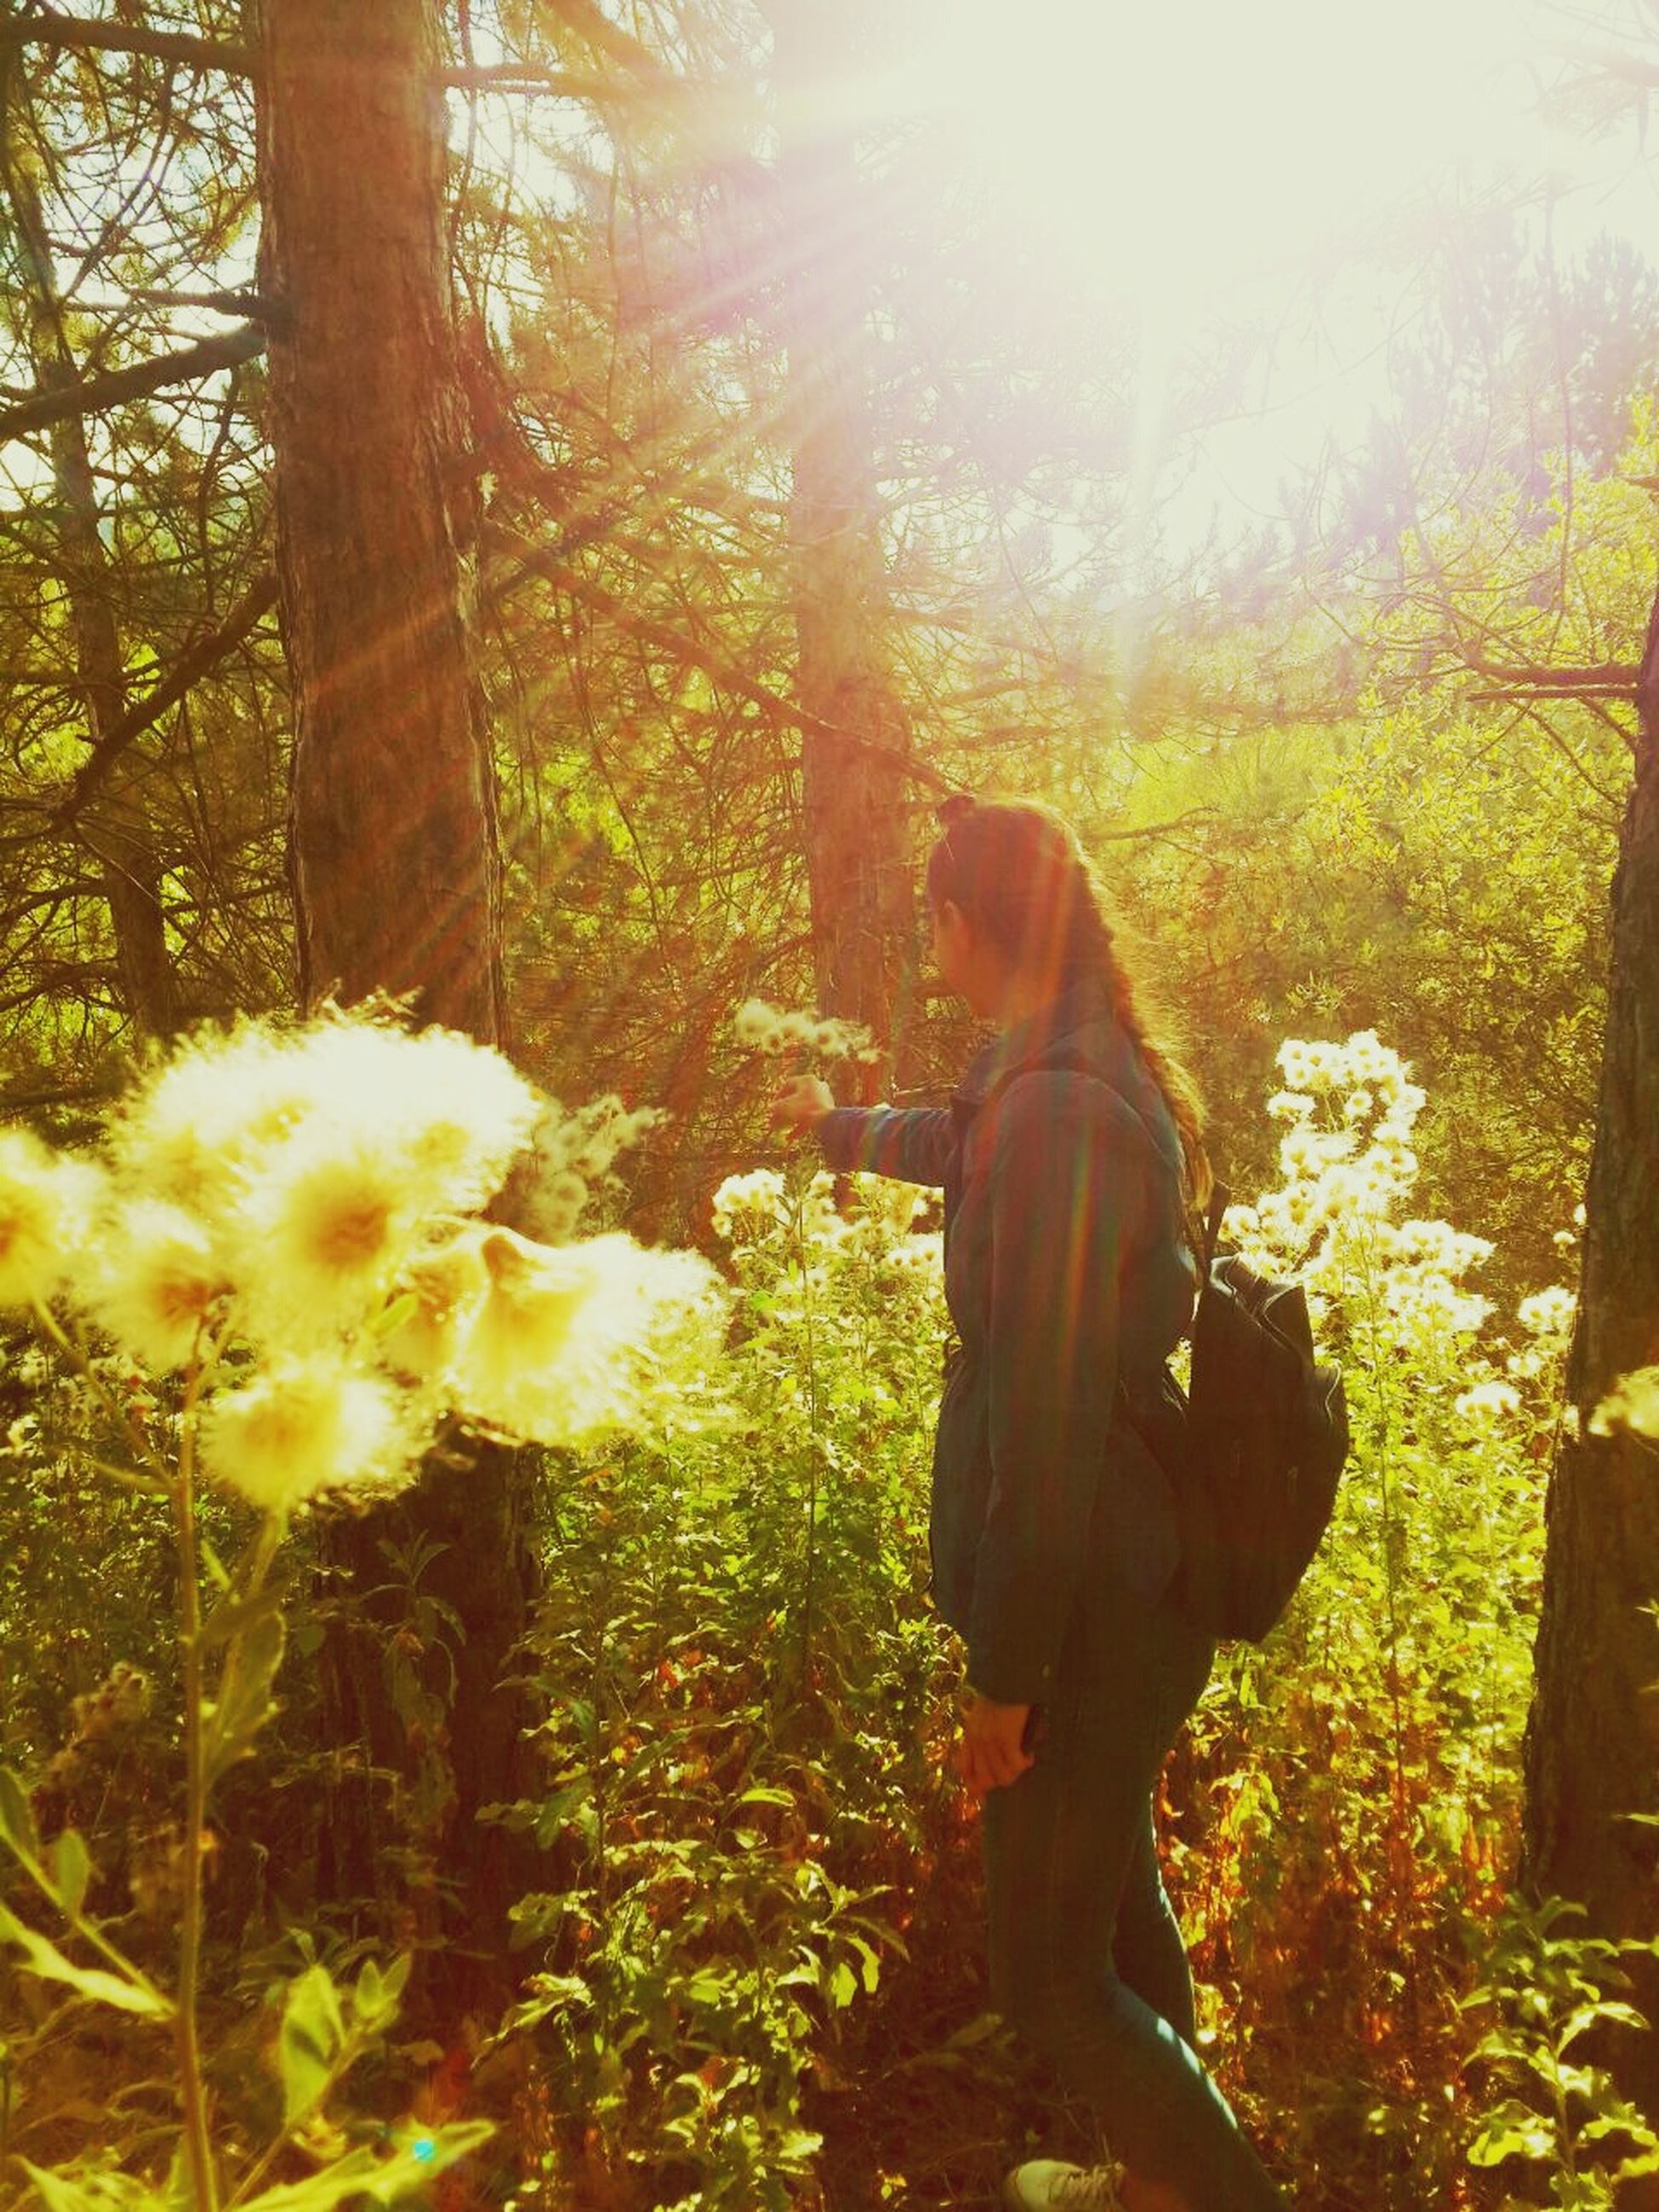 tree, flower, sunlight, sunbeam, growth, lens flare, lifestyles, leisure activity, casual clothing, plant, rear view, three quarter length, person, freshness, park - man made space, beauty in nature, bright, fragility, sun, nature, day, sunny, green color, park, footpath